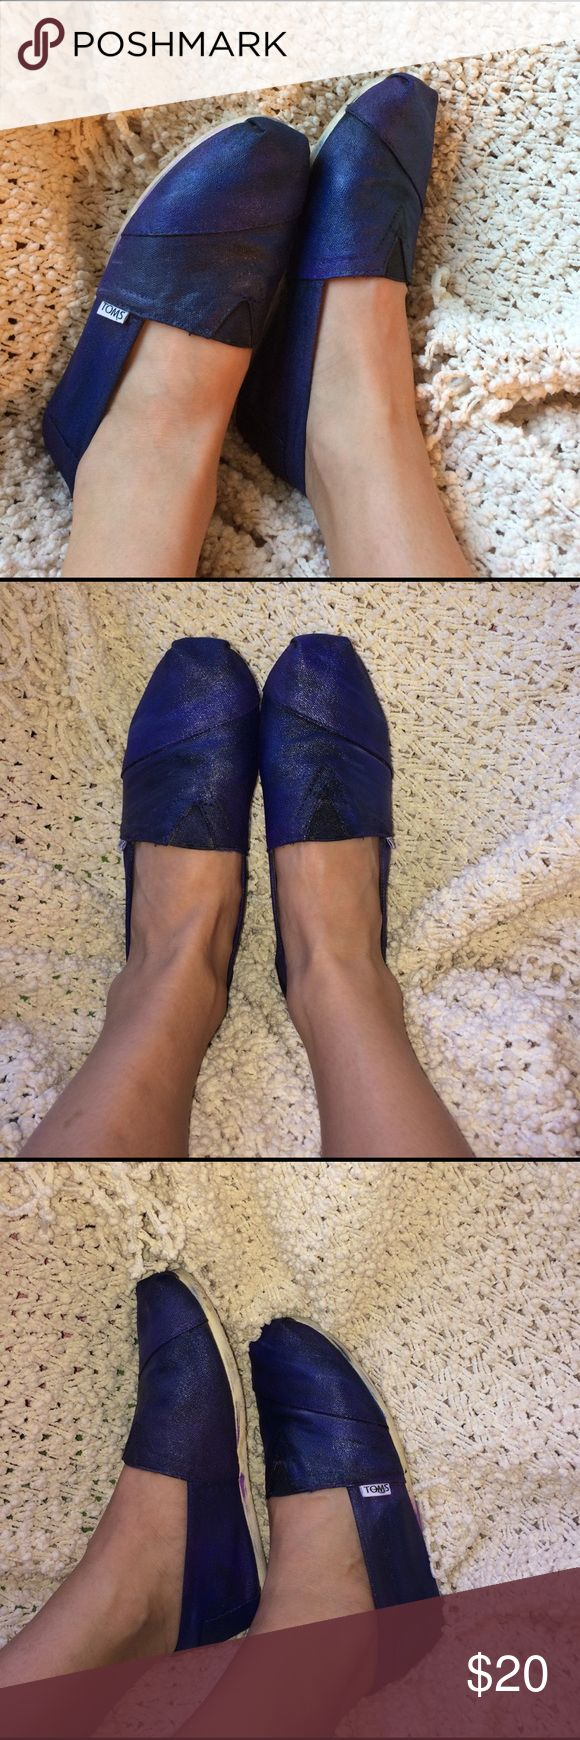 Galaxy Toms Hand painted galaxy Toms. Size W9. Worn a few times. TOMS Shoes Flats & Loafers